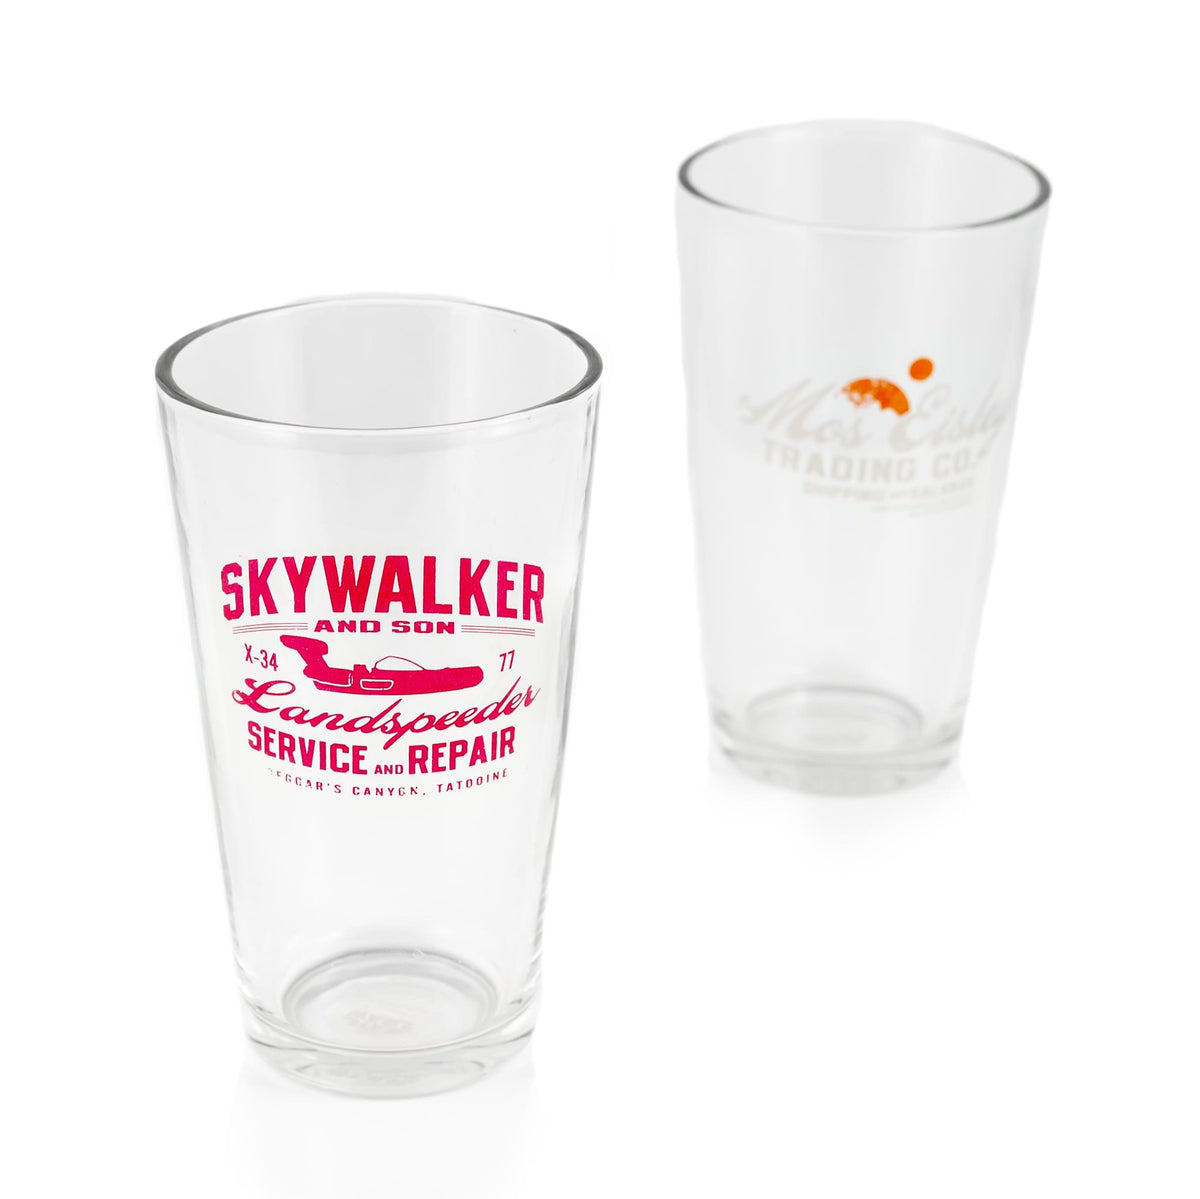 Star Wars 16 oz Pint Glass 2-Piece Set | Mos Eisley Co. | Skywalker & Sons Designs